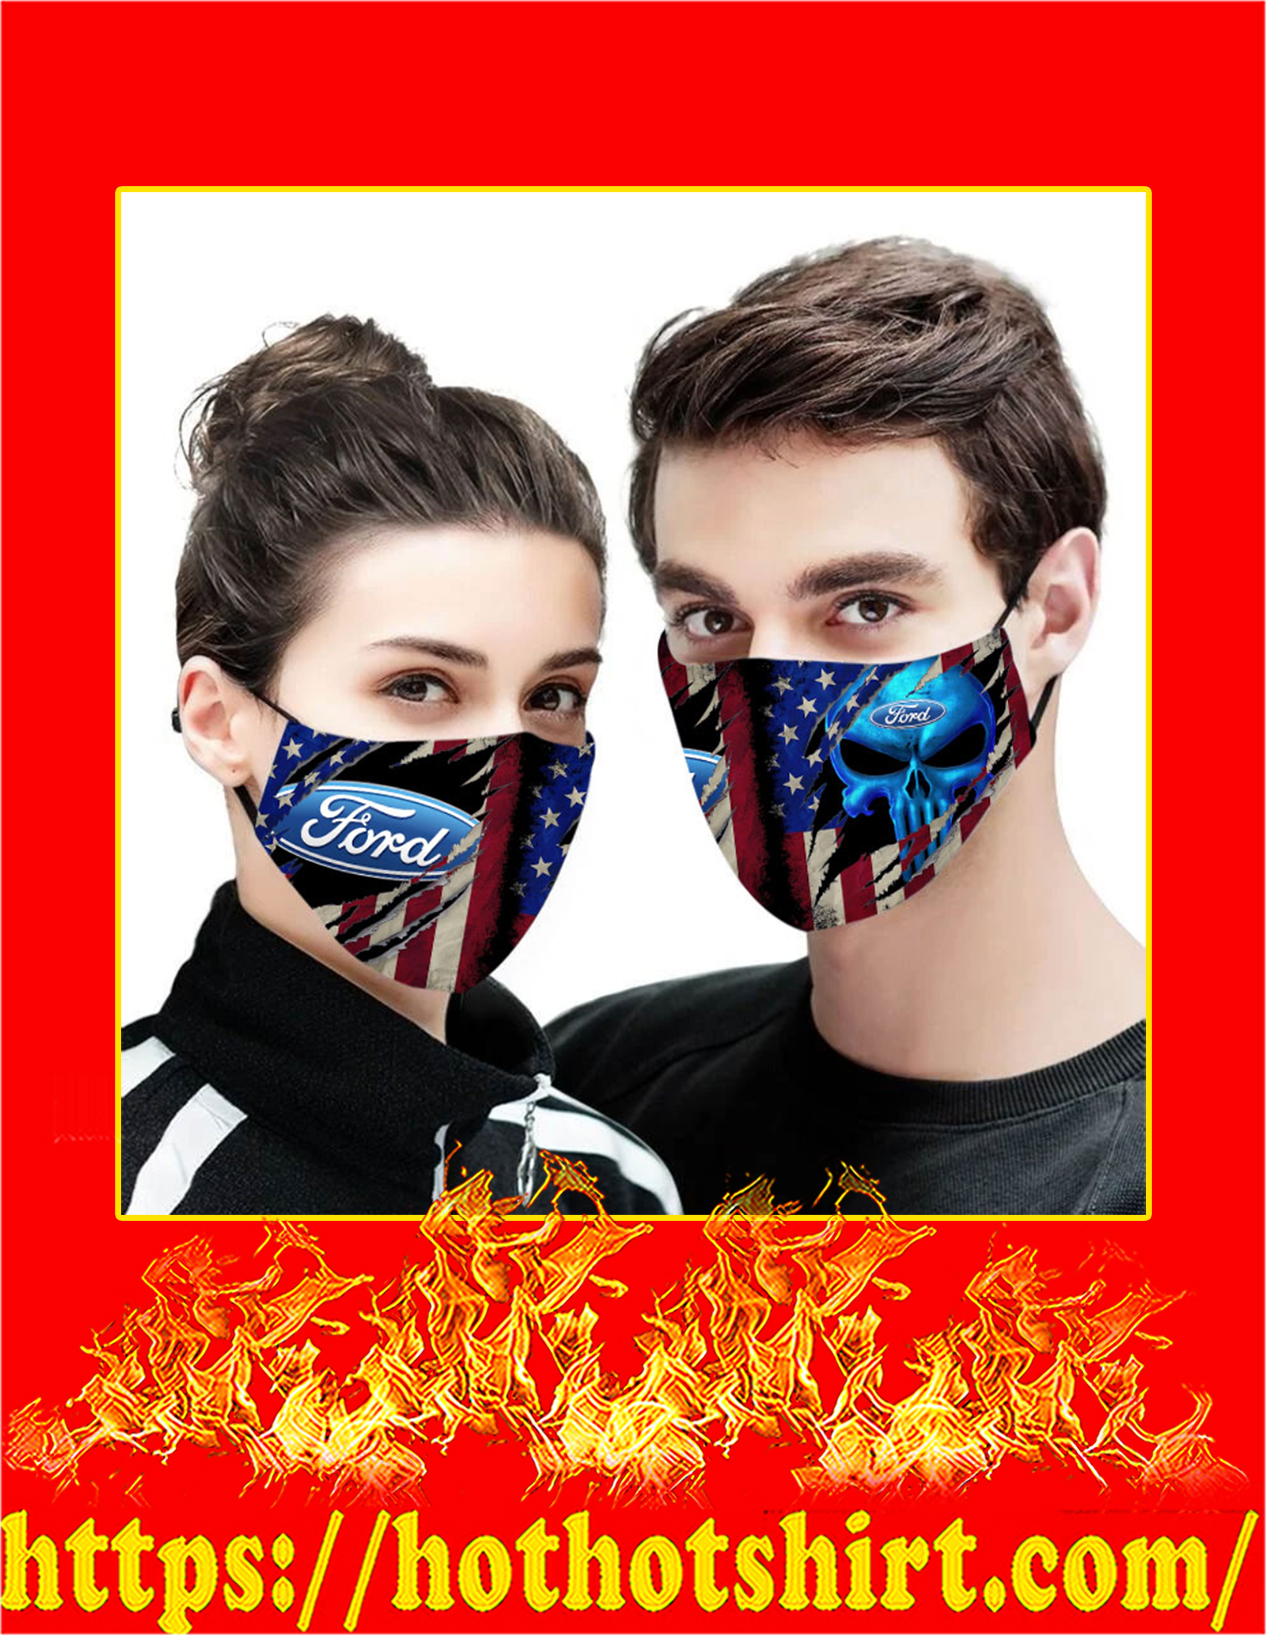 Ford punisher skull american flag face mask - detail